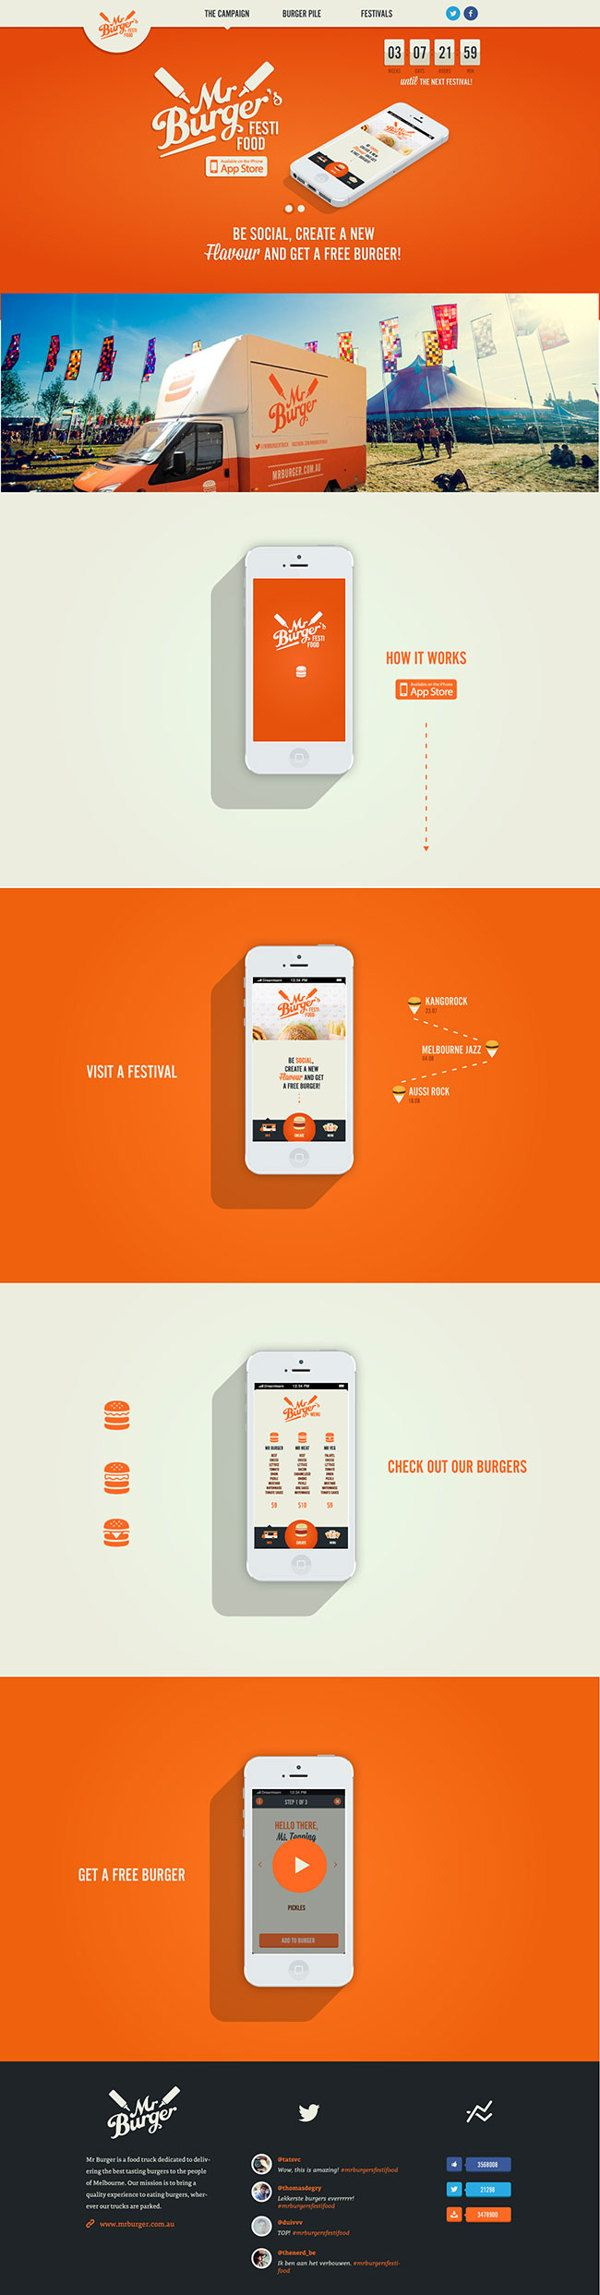 Mr. Burgers Festi Food by Tatiana Van Campenhout, via Behance more on http://themeforest.net/?ref=Vision7Studio